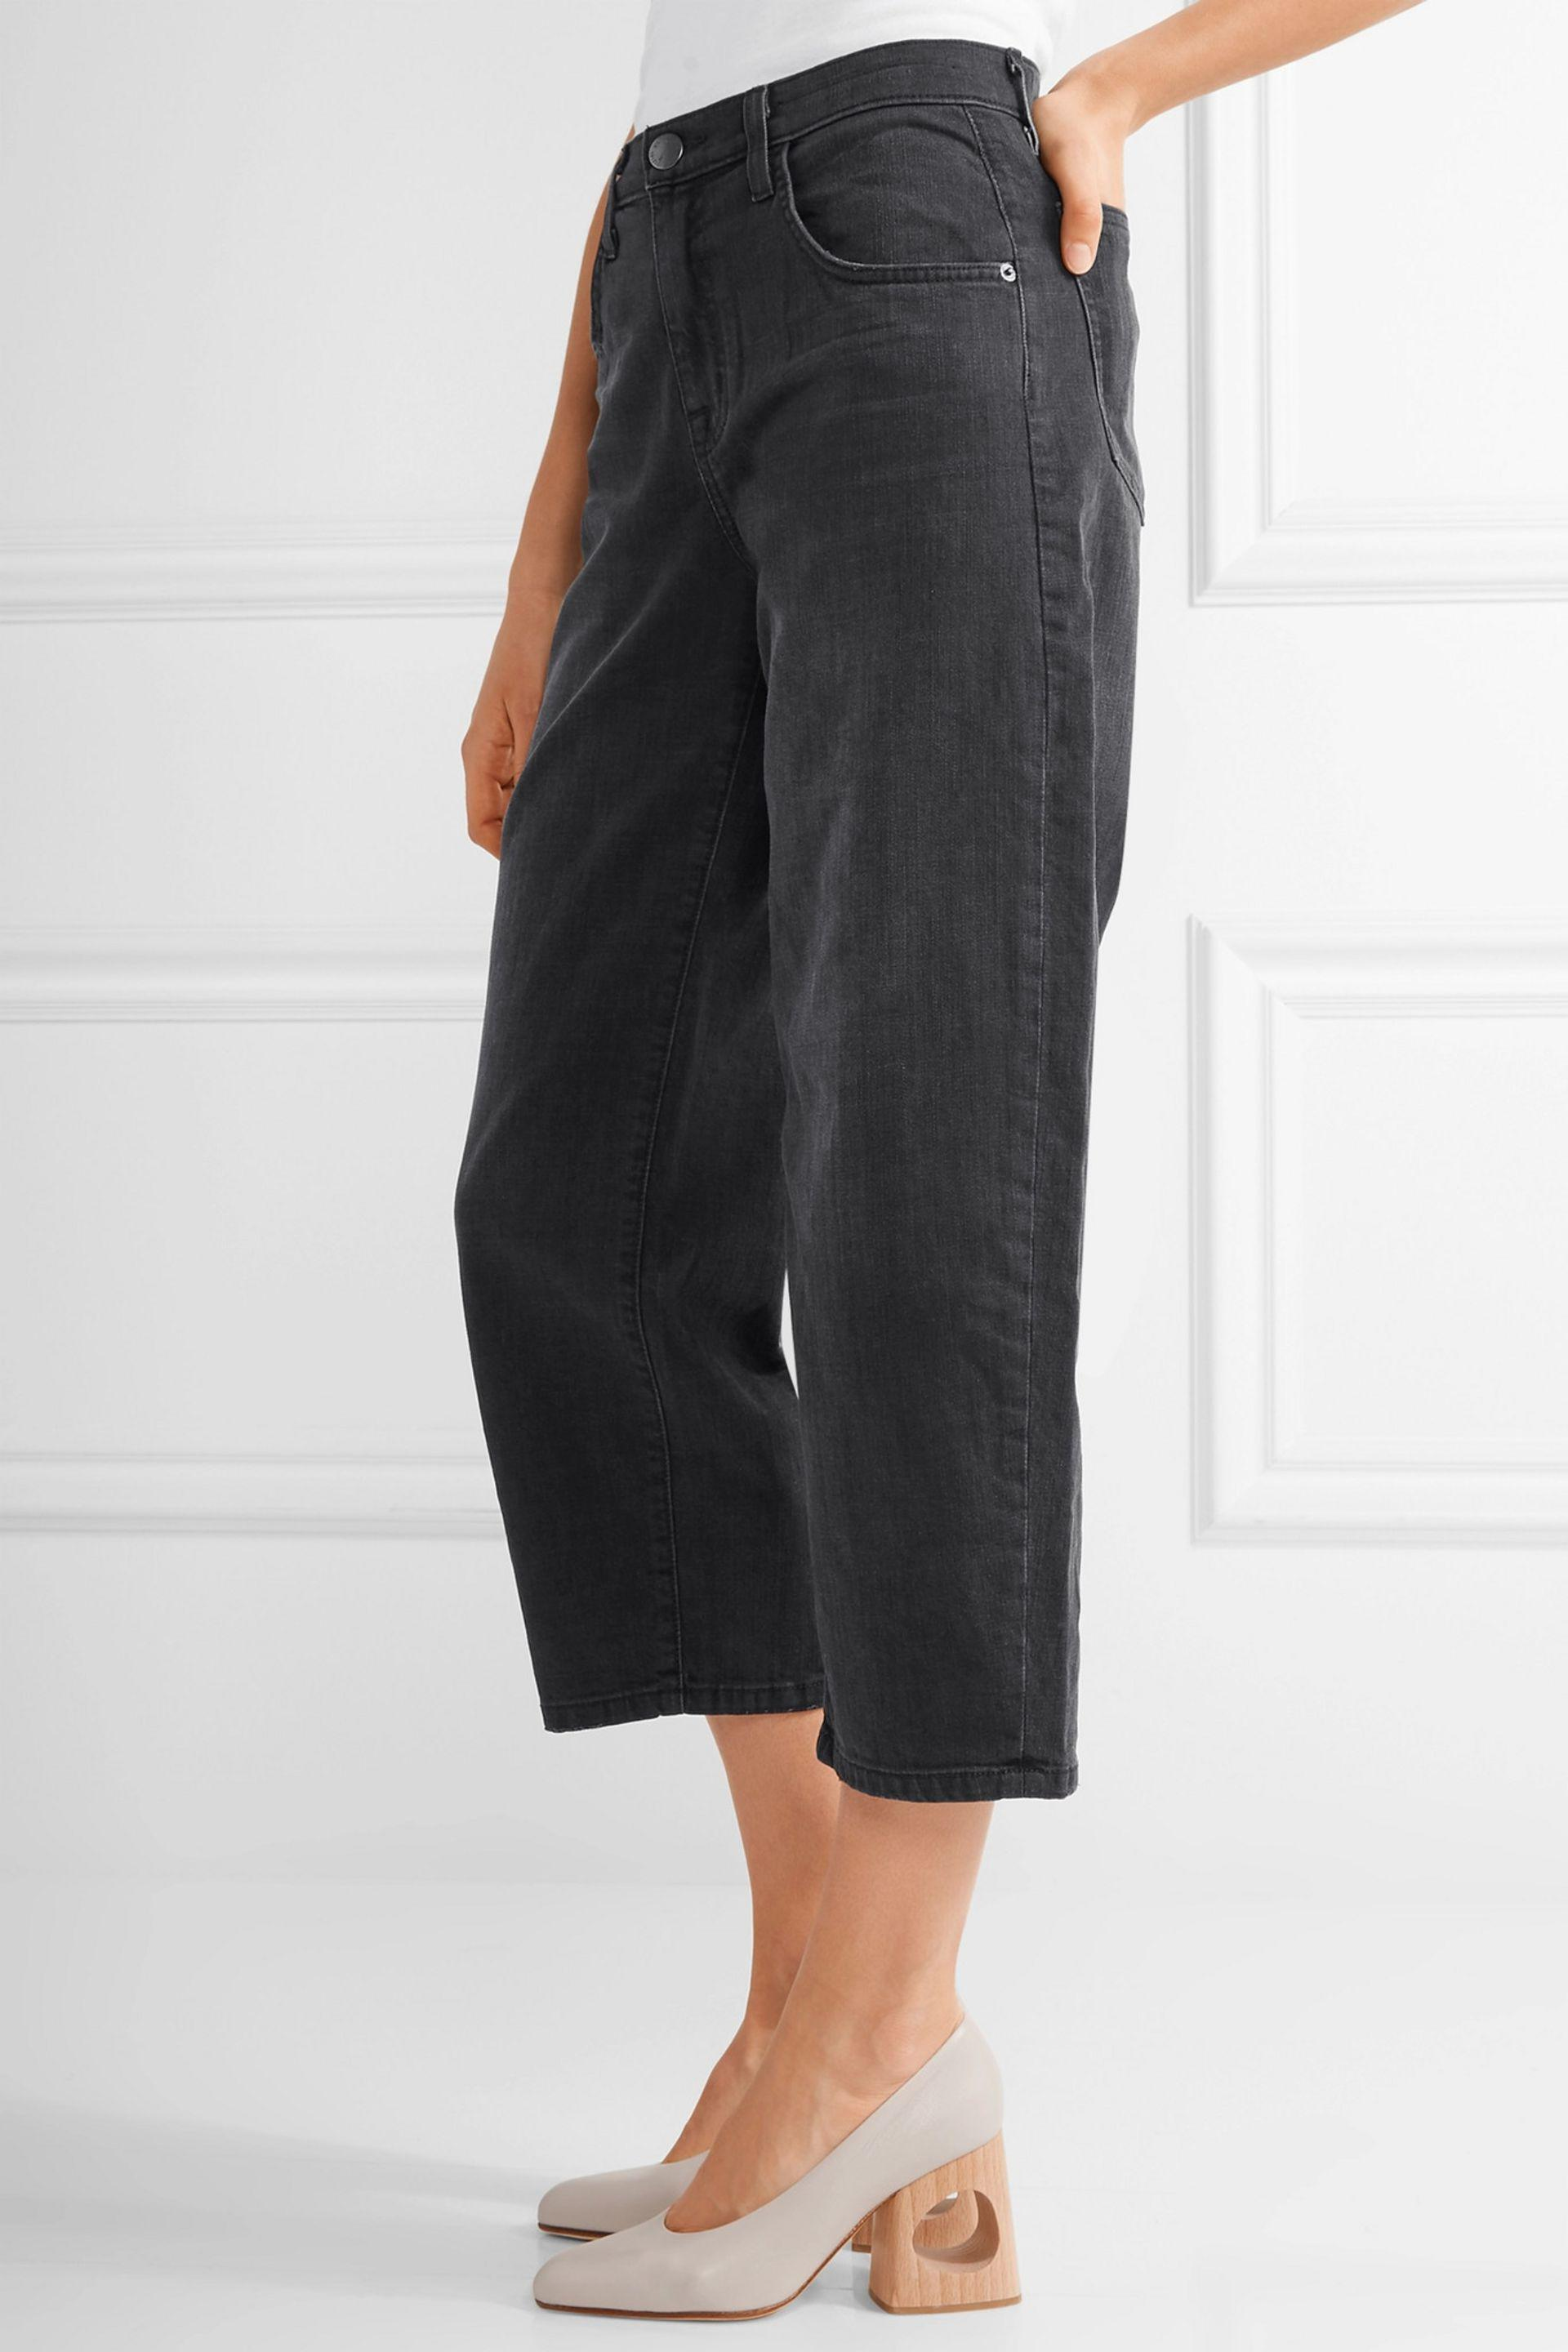 Current/Elliott Denim The Barrel Crop High-rise Wide-leg Jeans in Black